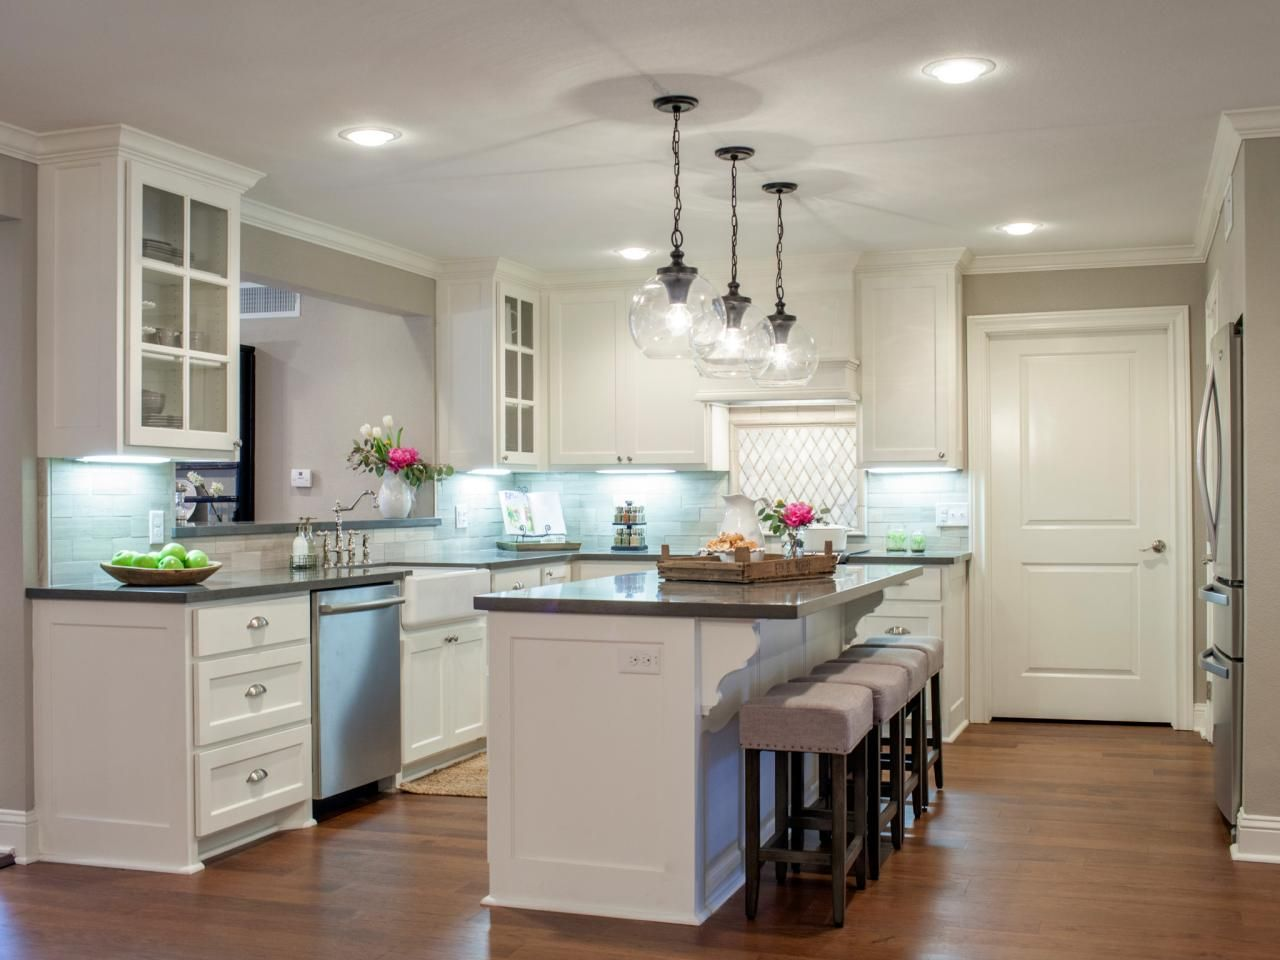 Fixer upper home kitchen - As Seen On Hgtv S Fixer Upper